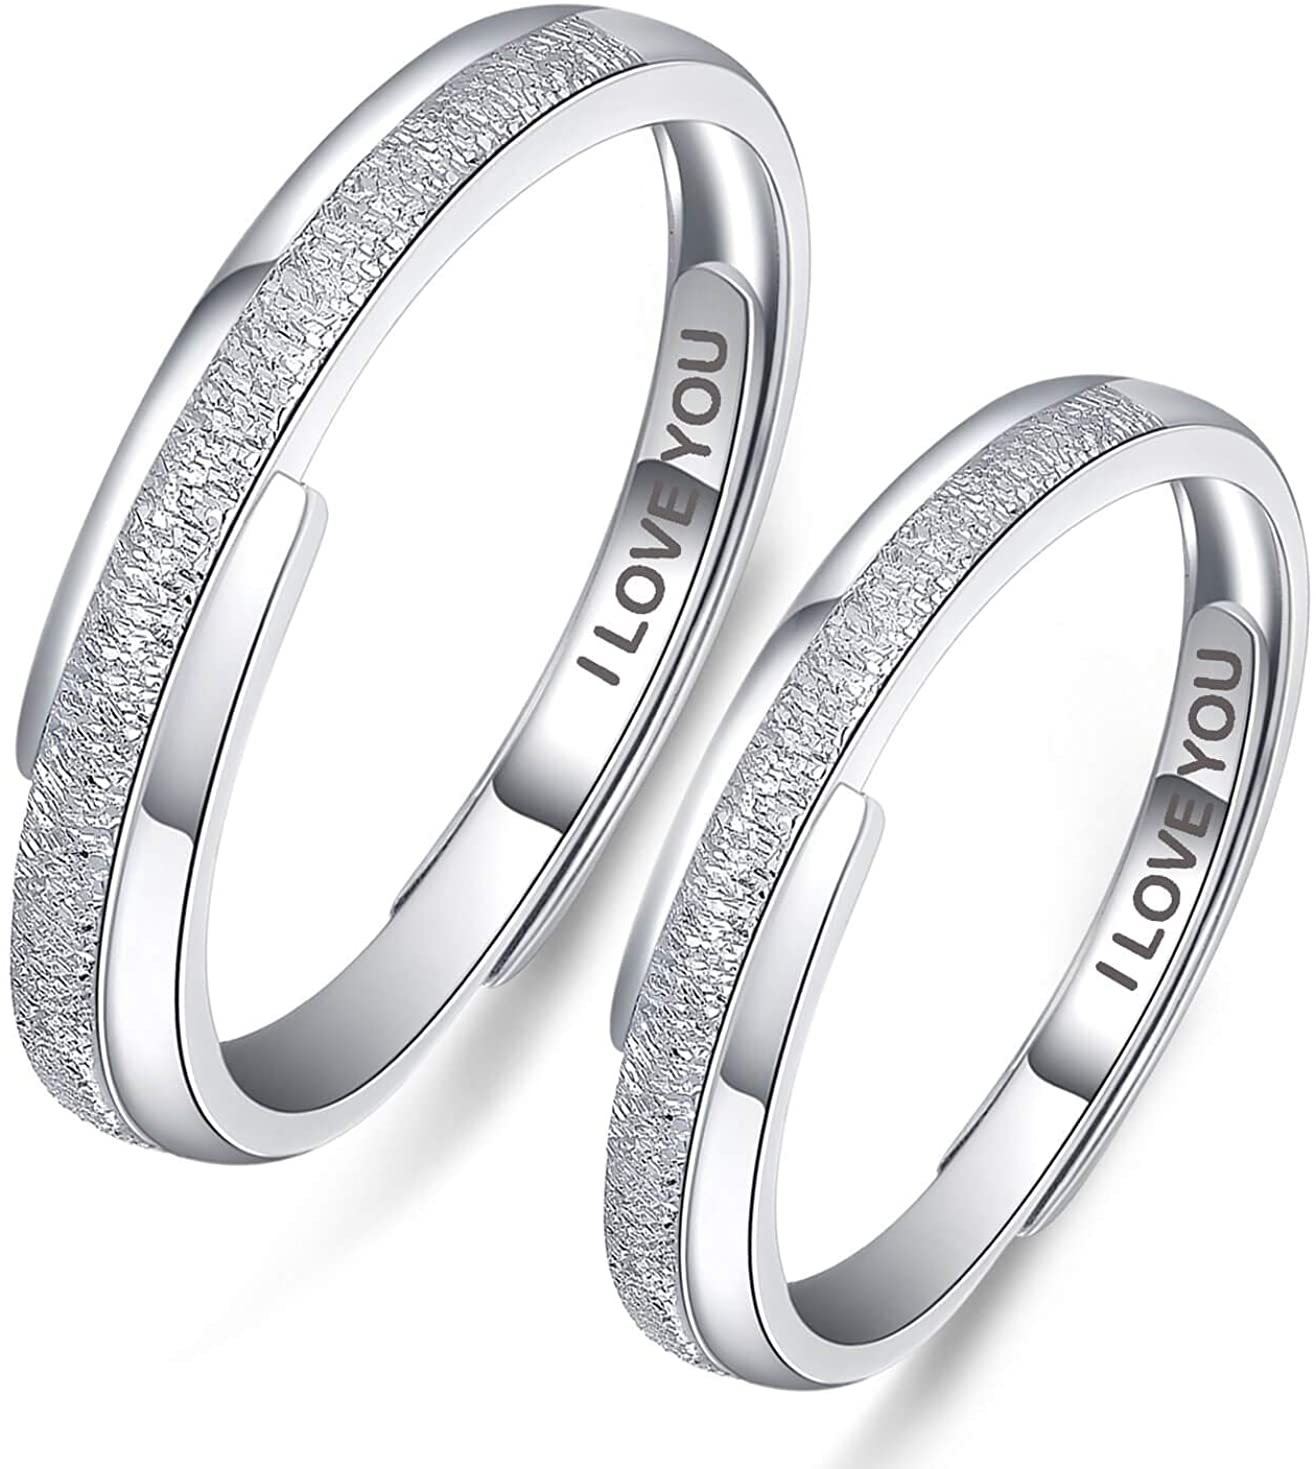 Aooaz Promise Rings for Couples, S925 Sterling Silver Rings Set I Love You Engagement Adjustable